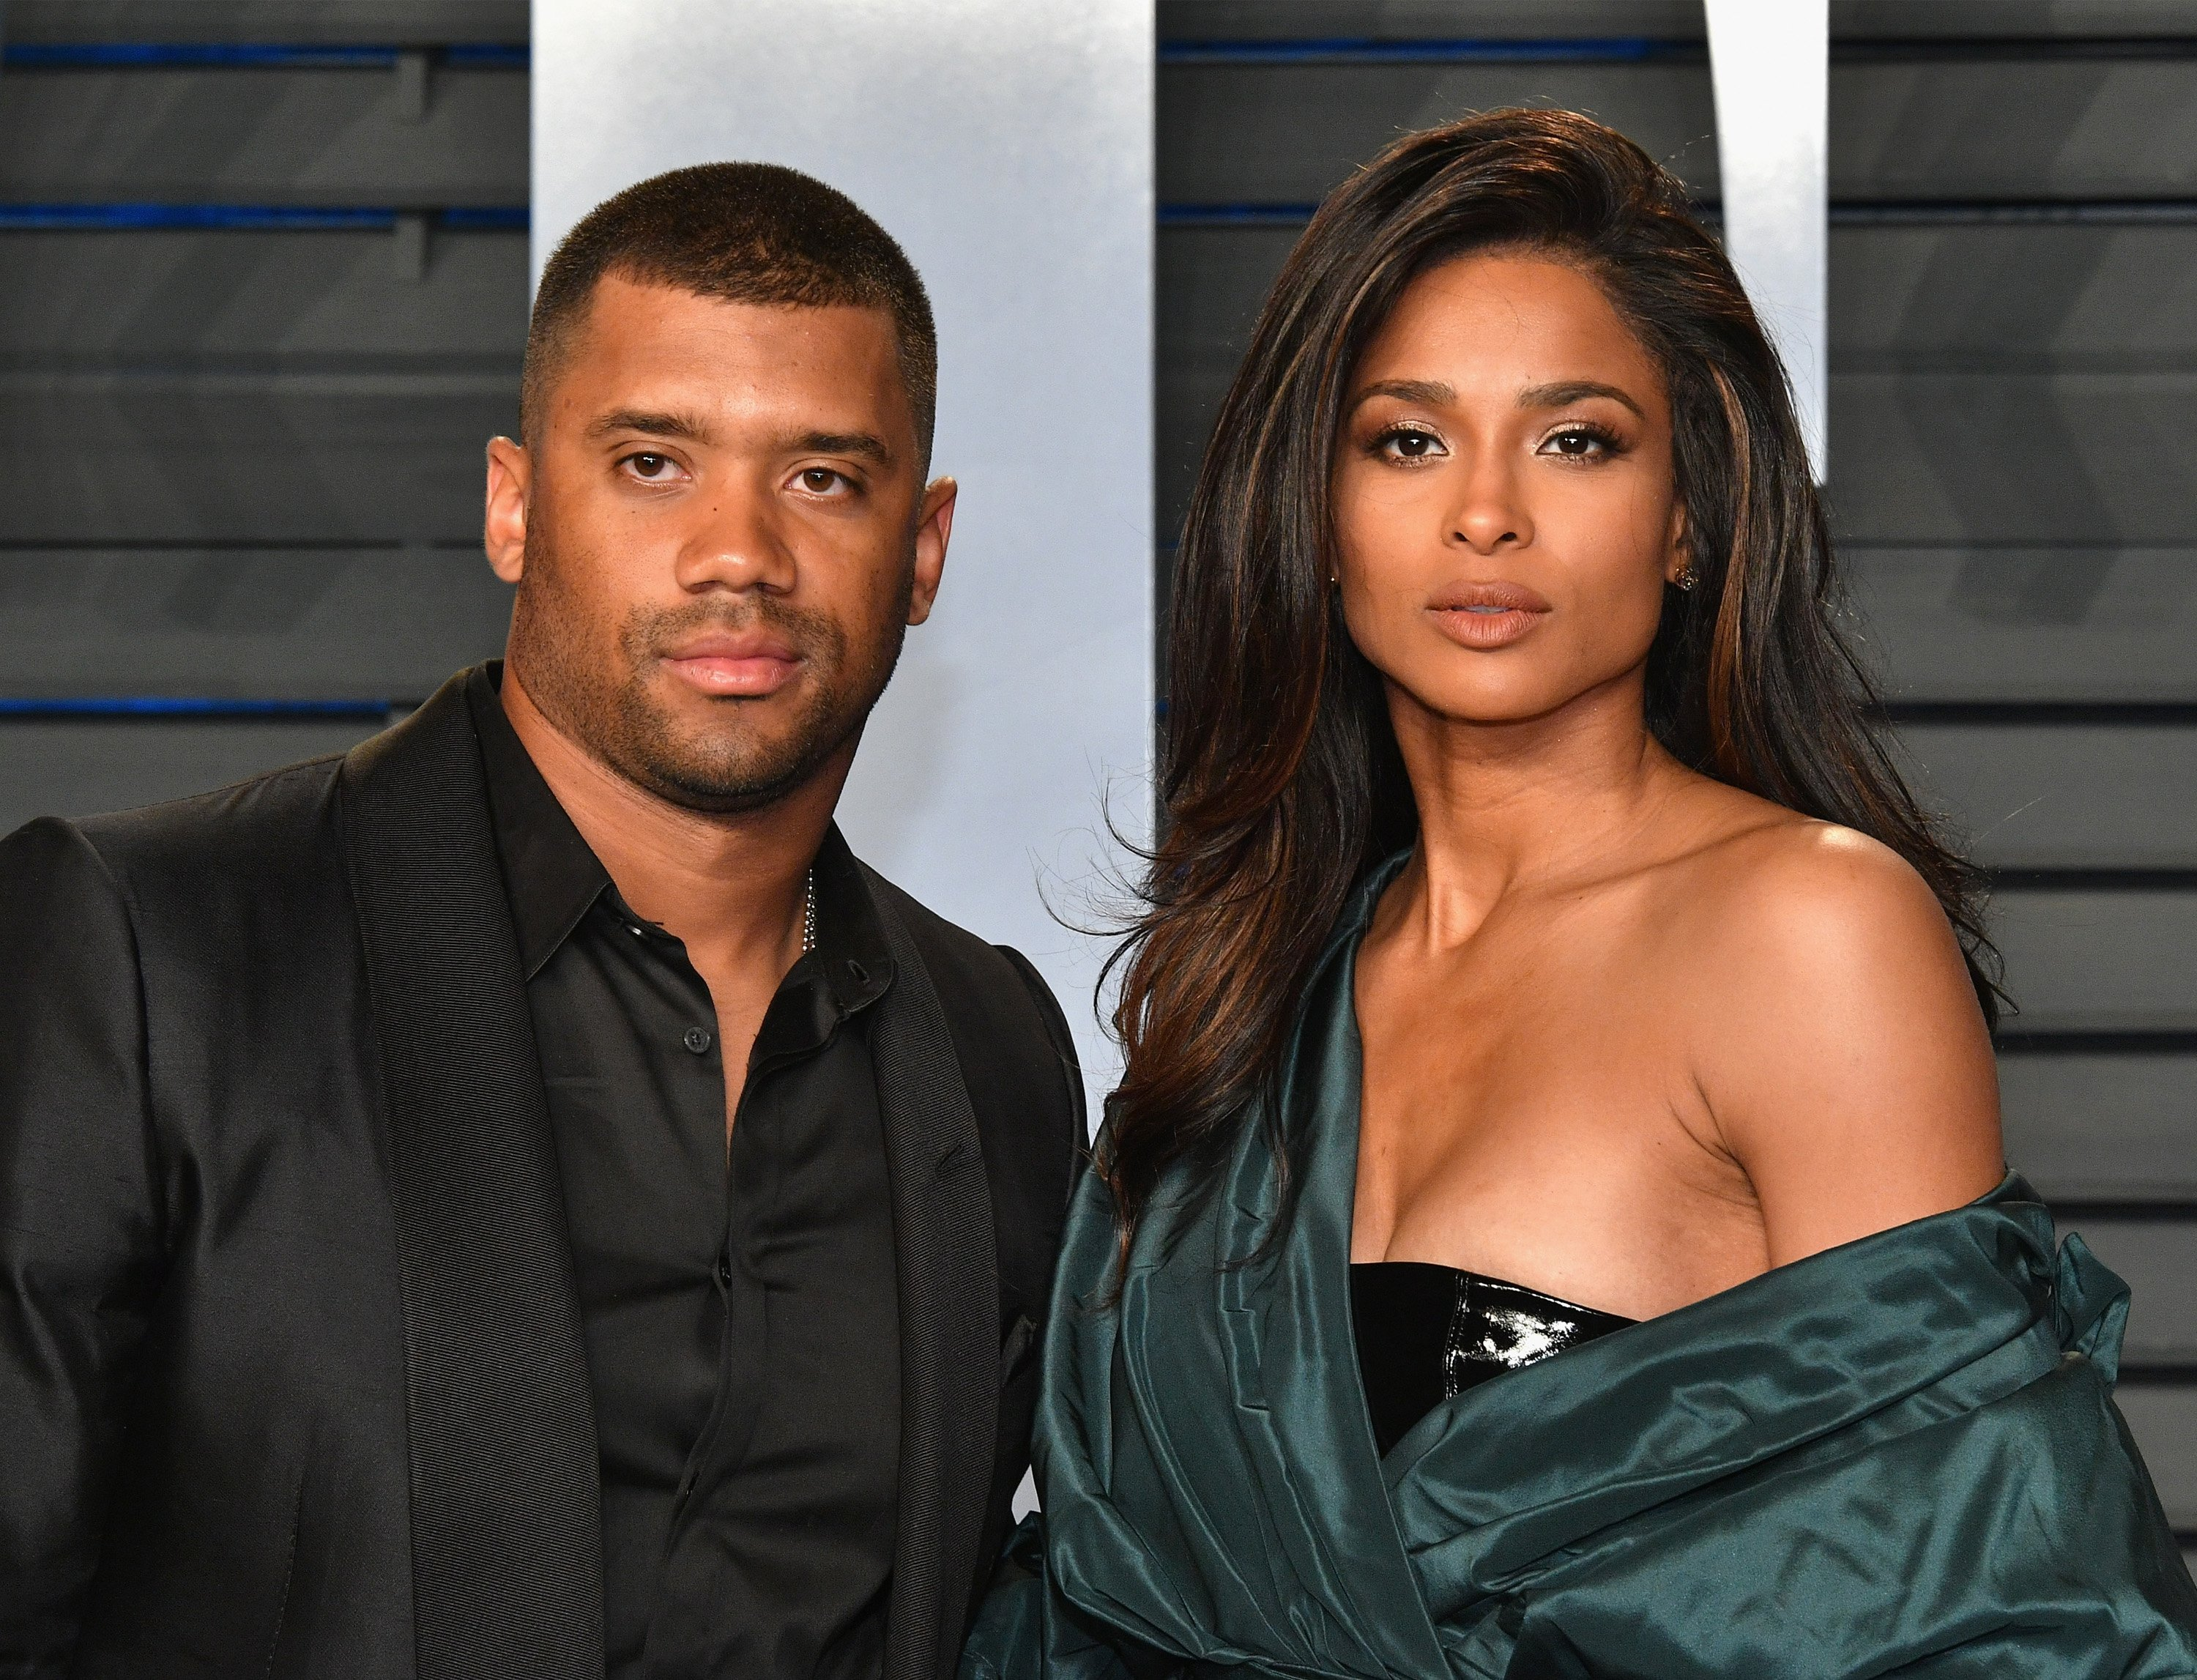 Russell and Ciara Wilson at the 2018 Vanity Fair Oscar Party at Wallis Annenberg Center for the Performing Arts on March 4, 2018 in Beverly Hills, California.| Source: Getty Images